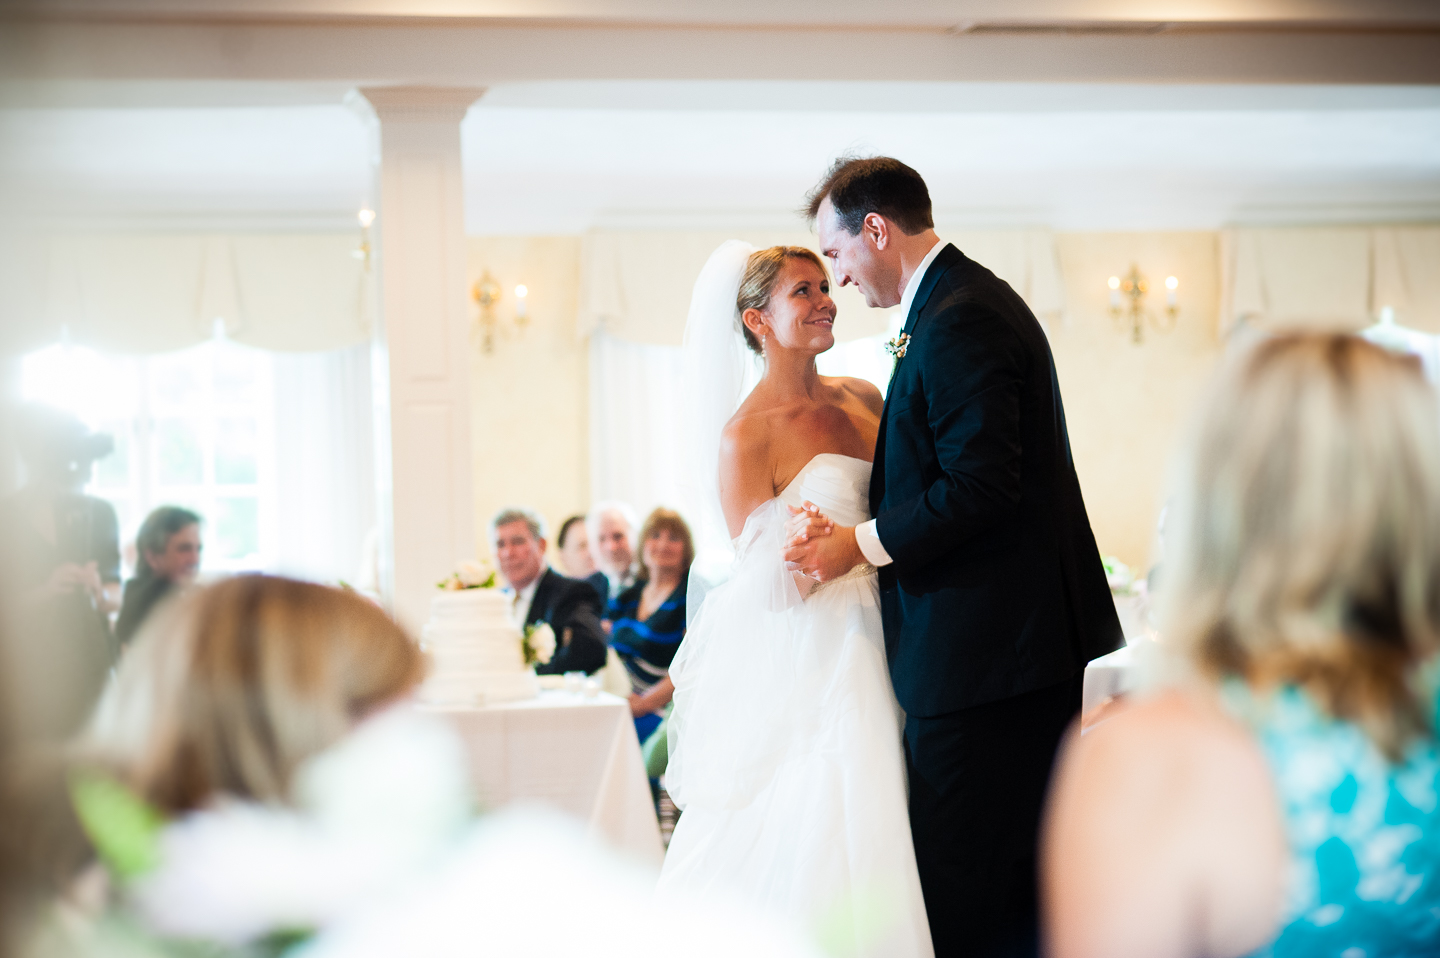 a very sweet moment between the bride and groom during their first dance as husband and wife